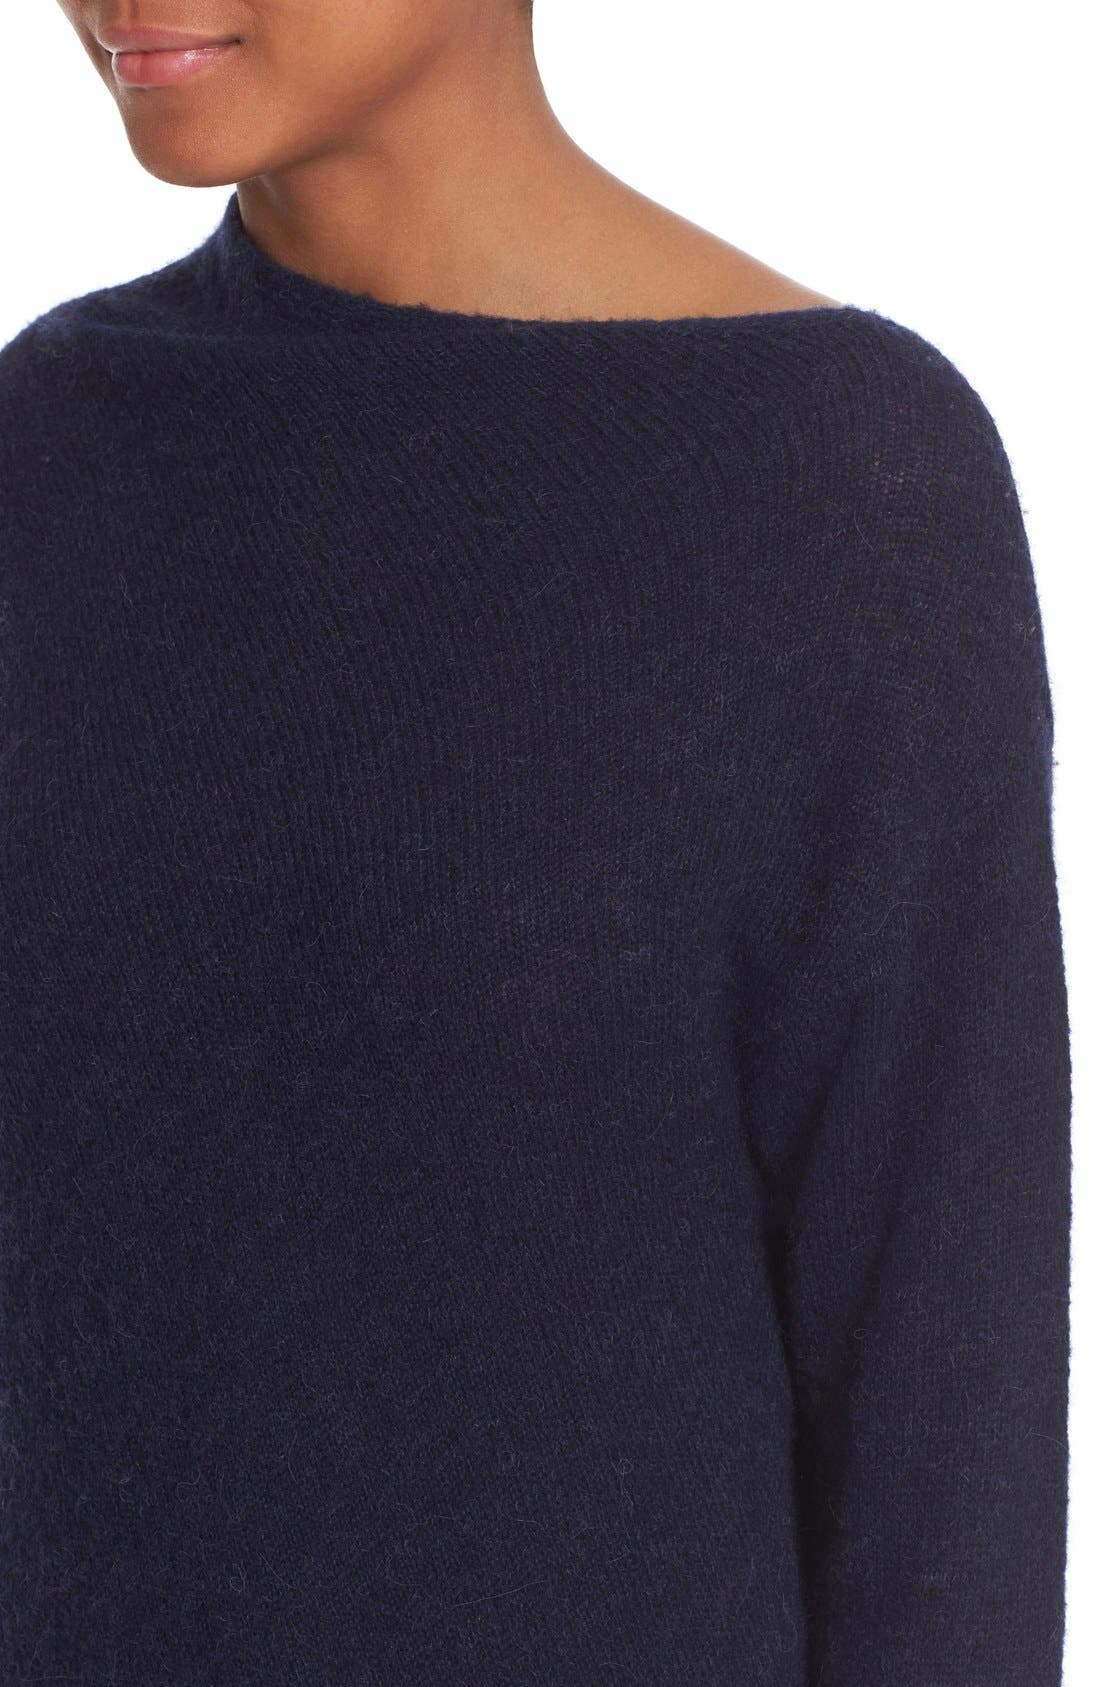 Asymmetrical Neck Sweater,                             Alternate thumbnail 4, color,                             401